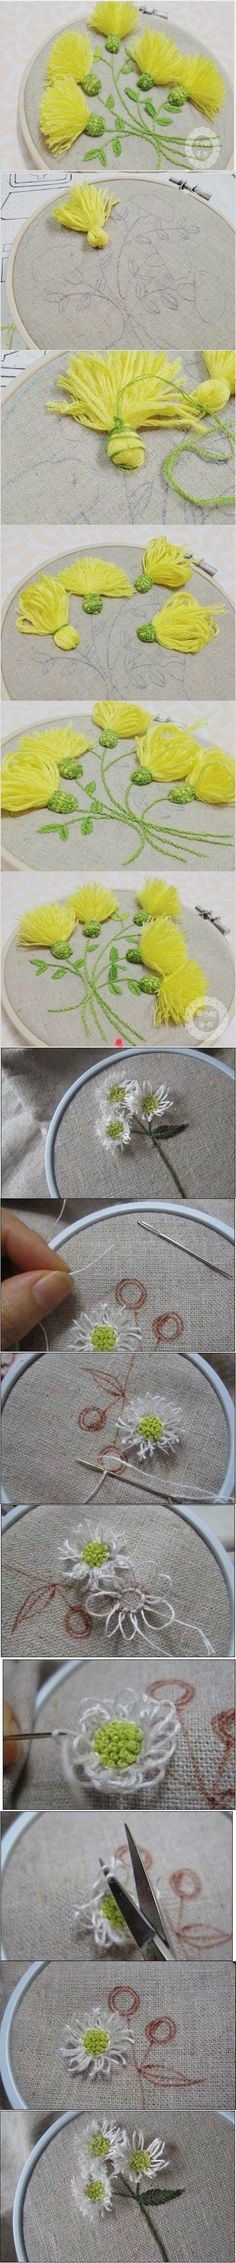 DIY l Embroidered Flowers 2 Silk Ribbon Embroidery, Embroidery Patches, Embroidery Art, Cross Stitch Embroidery, Embroidery Patterns, Yarn Crafts, Sewing Crafts, Sewing Projects, Diy Crafts